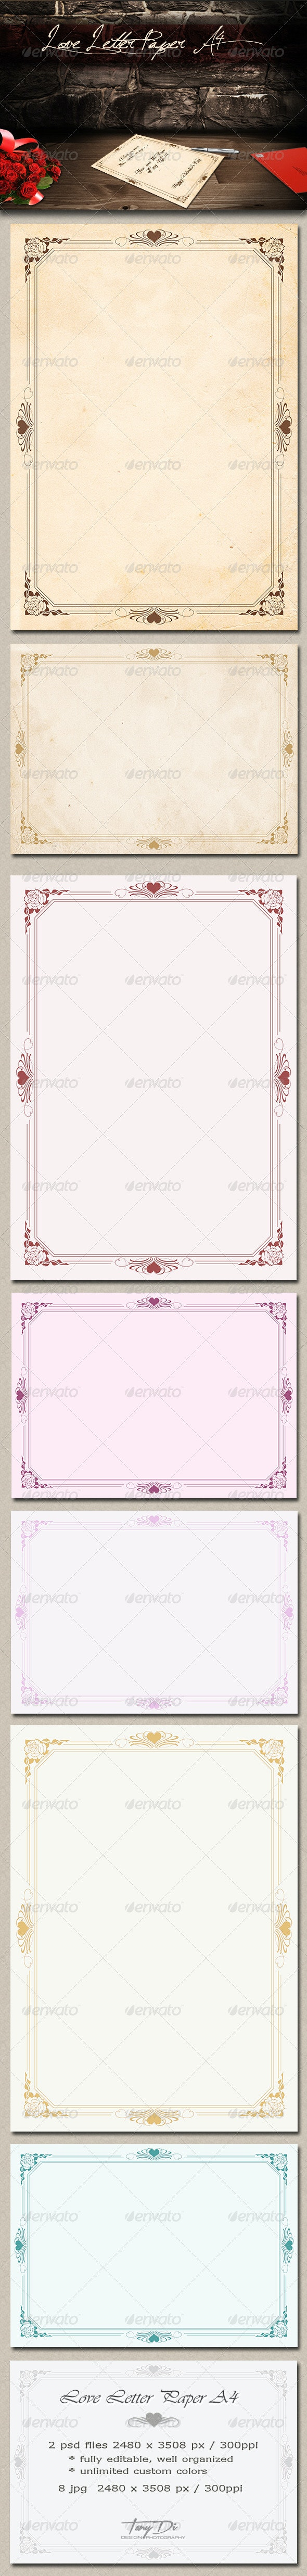 Love Letter Paper A4 - Miscellaneous Backgrounds